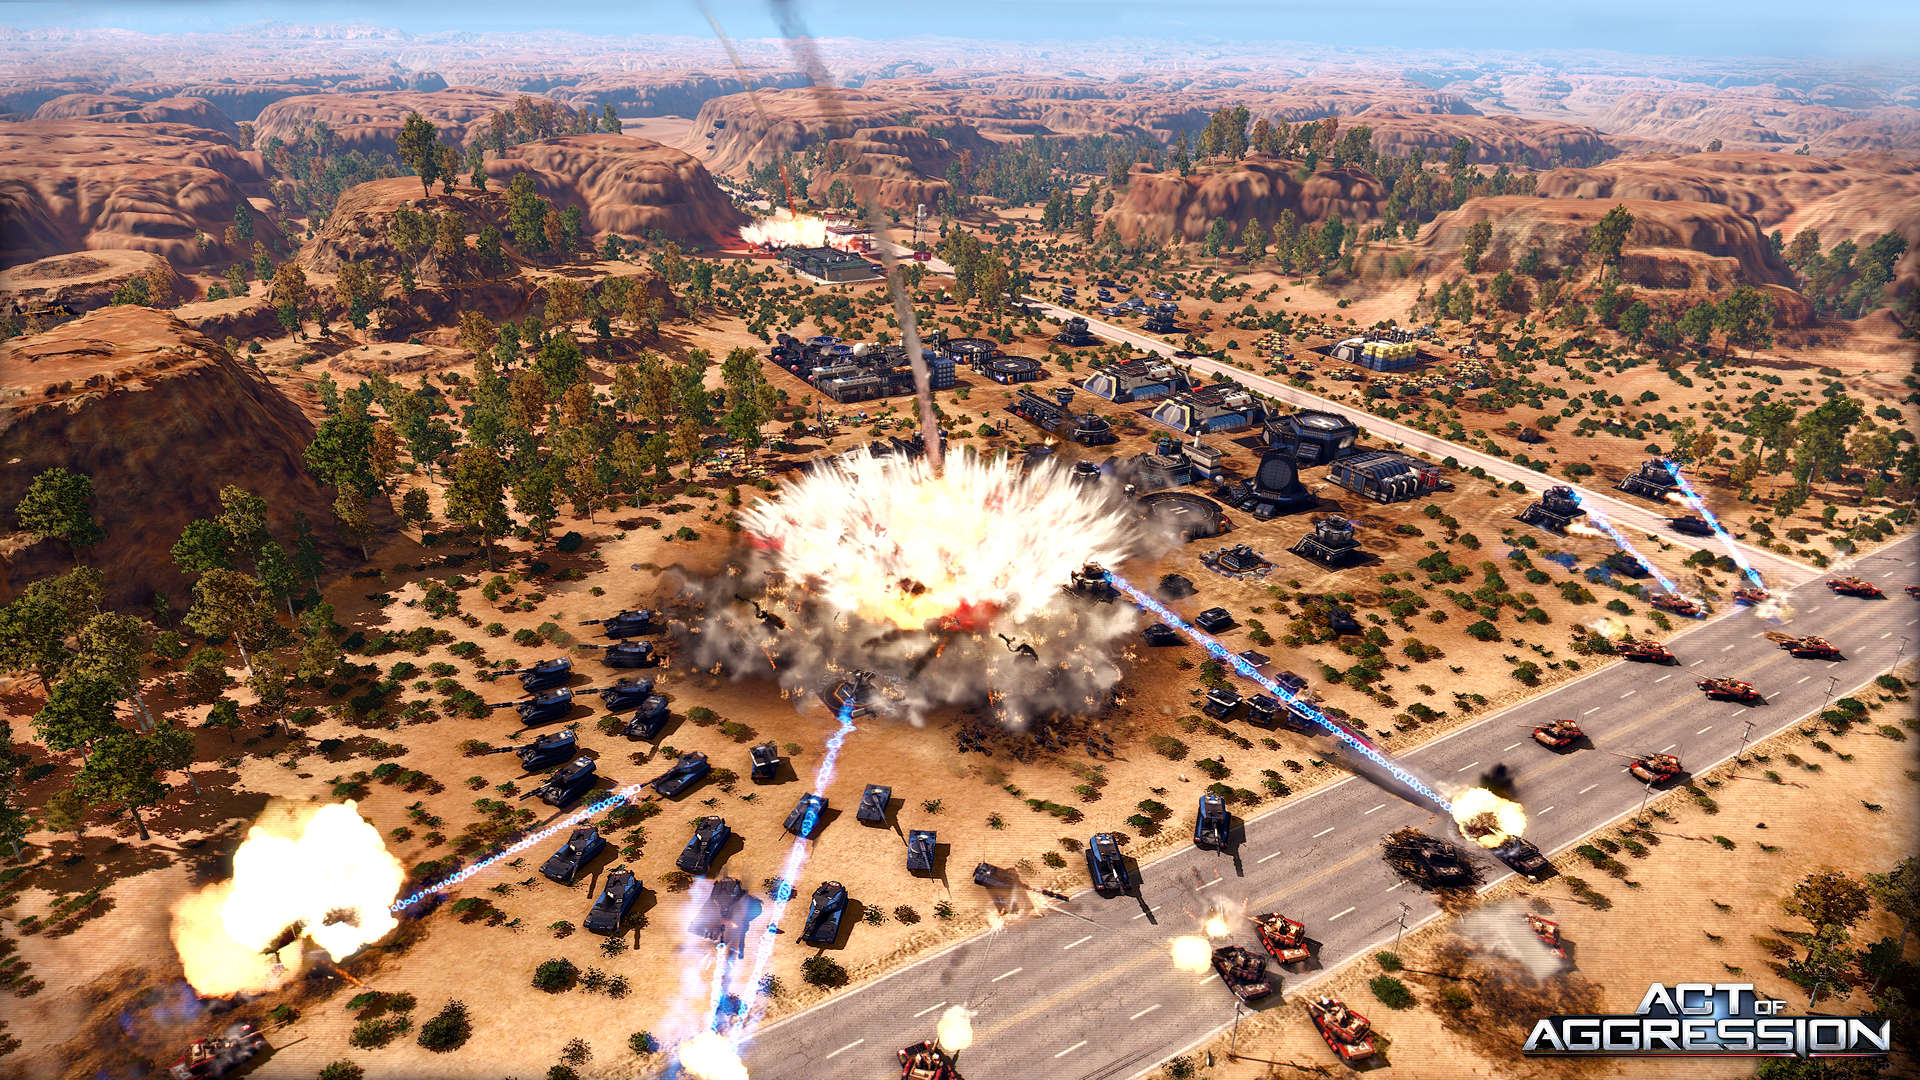 act_of_aggression_publisher_weekend_sale_on_steam_for_linux_mac_pc